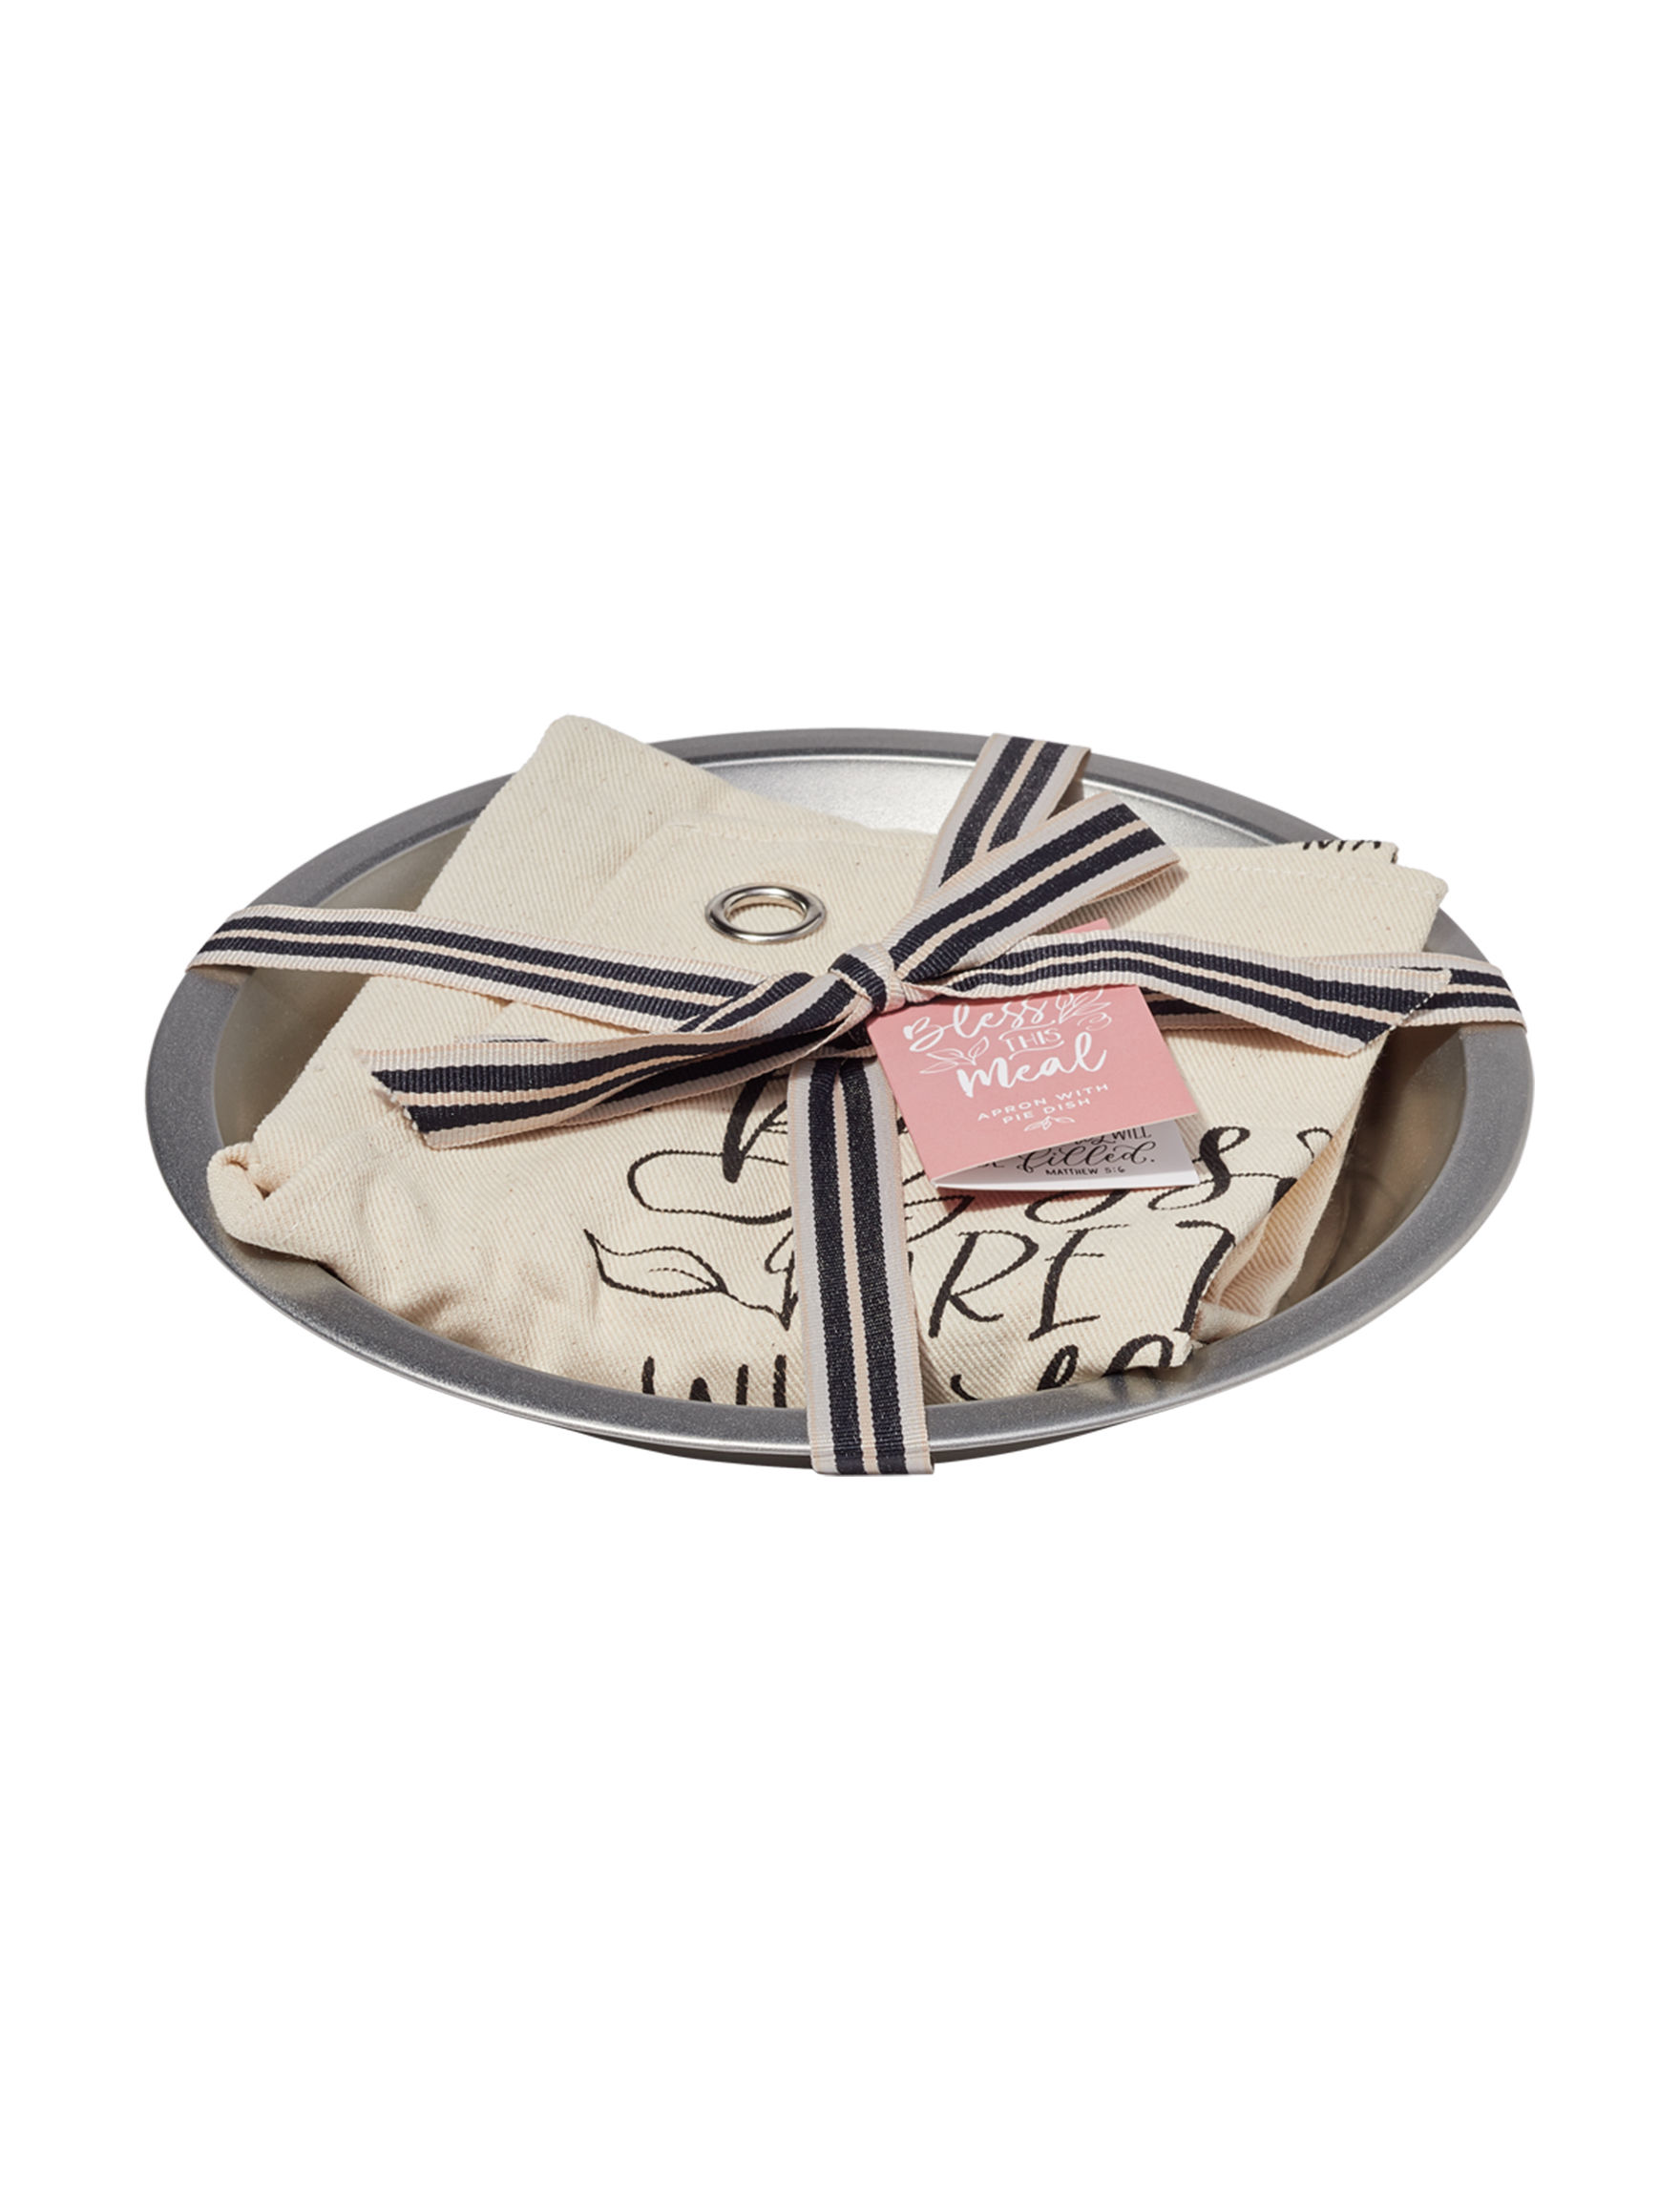 Two's Company White / Silver Baking & Casserole Dishes Bakeware Kitchen Linens